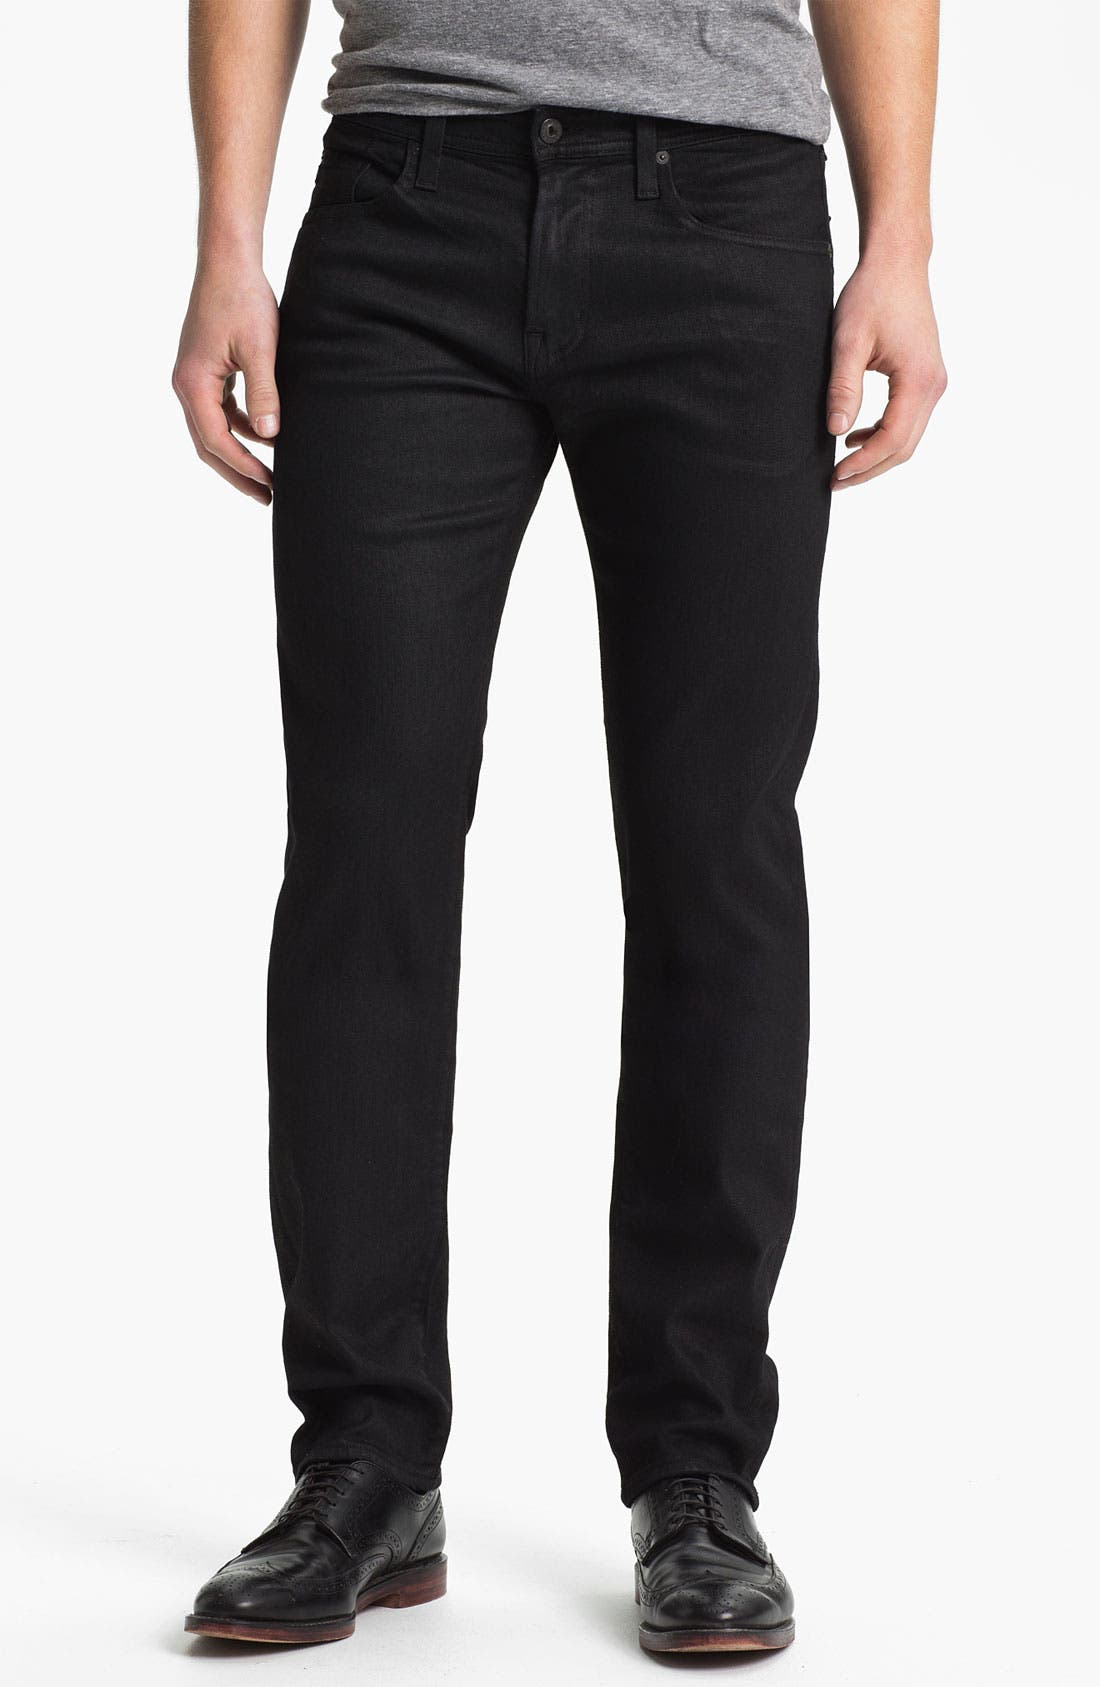 Alternate Image 1 Selected - AG Jeans 'Matchbox Slim' Straight Leg Jeans (Coal)